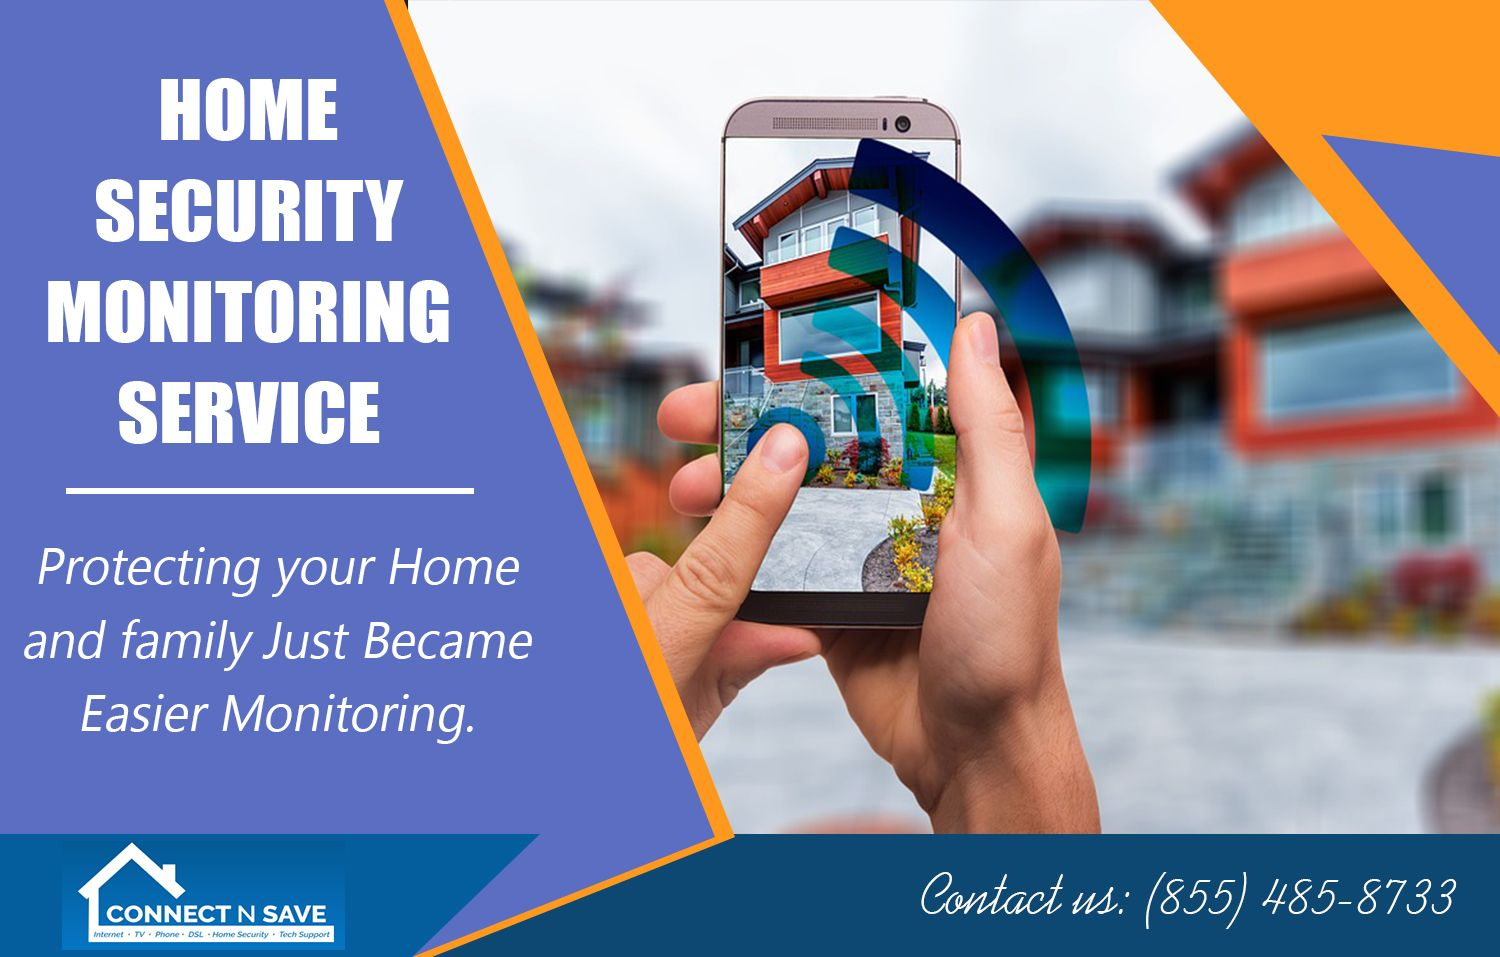 Wireless Home Security Systems Wireless Home Security Systems Best Internet Provider Home Security Monitoring